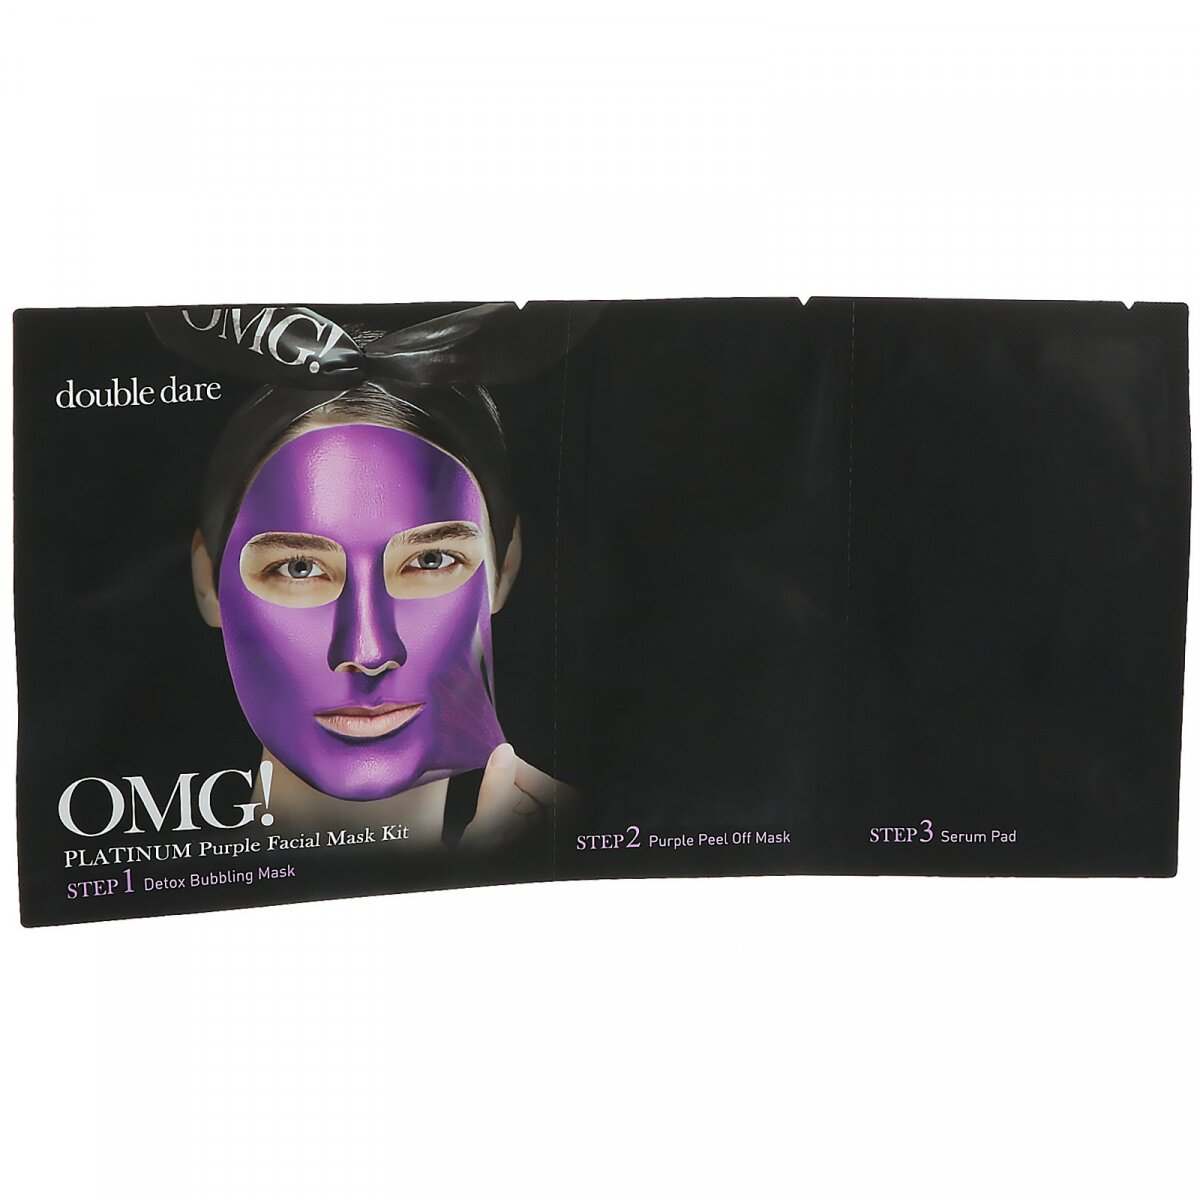 OMG !, Платиново-фиолетовая маска для лица, OMG!, Platinum Purple Facial Mask Kit, Double Dare, 1 набор